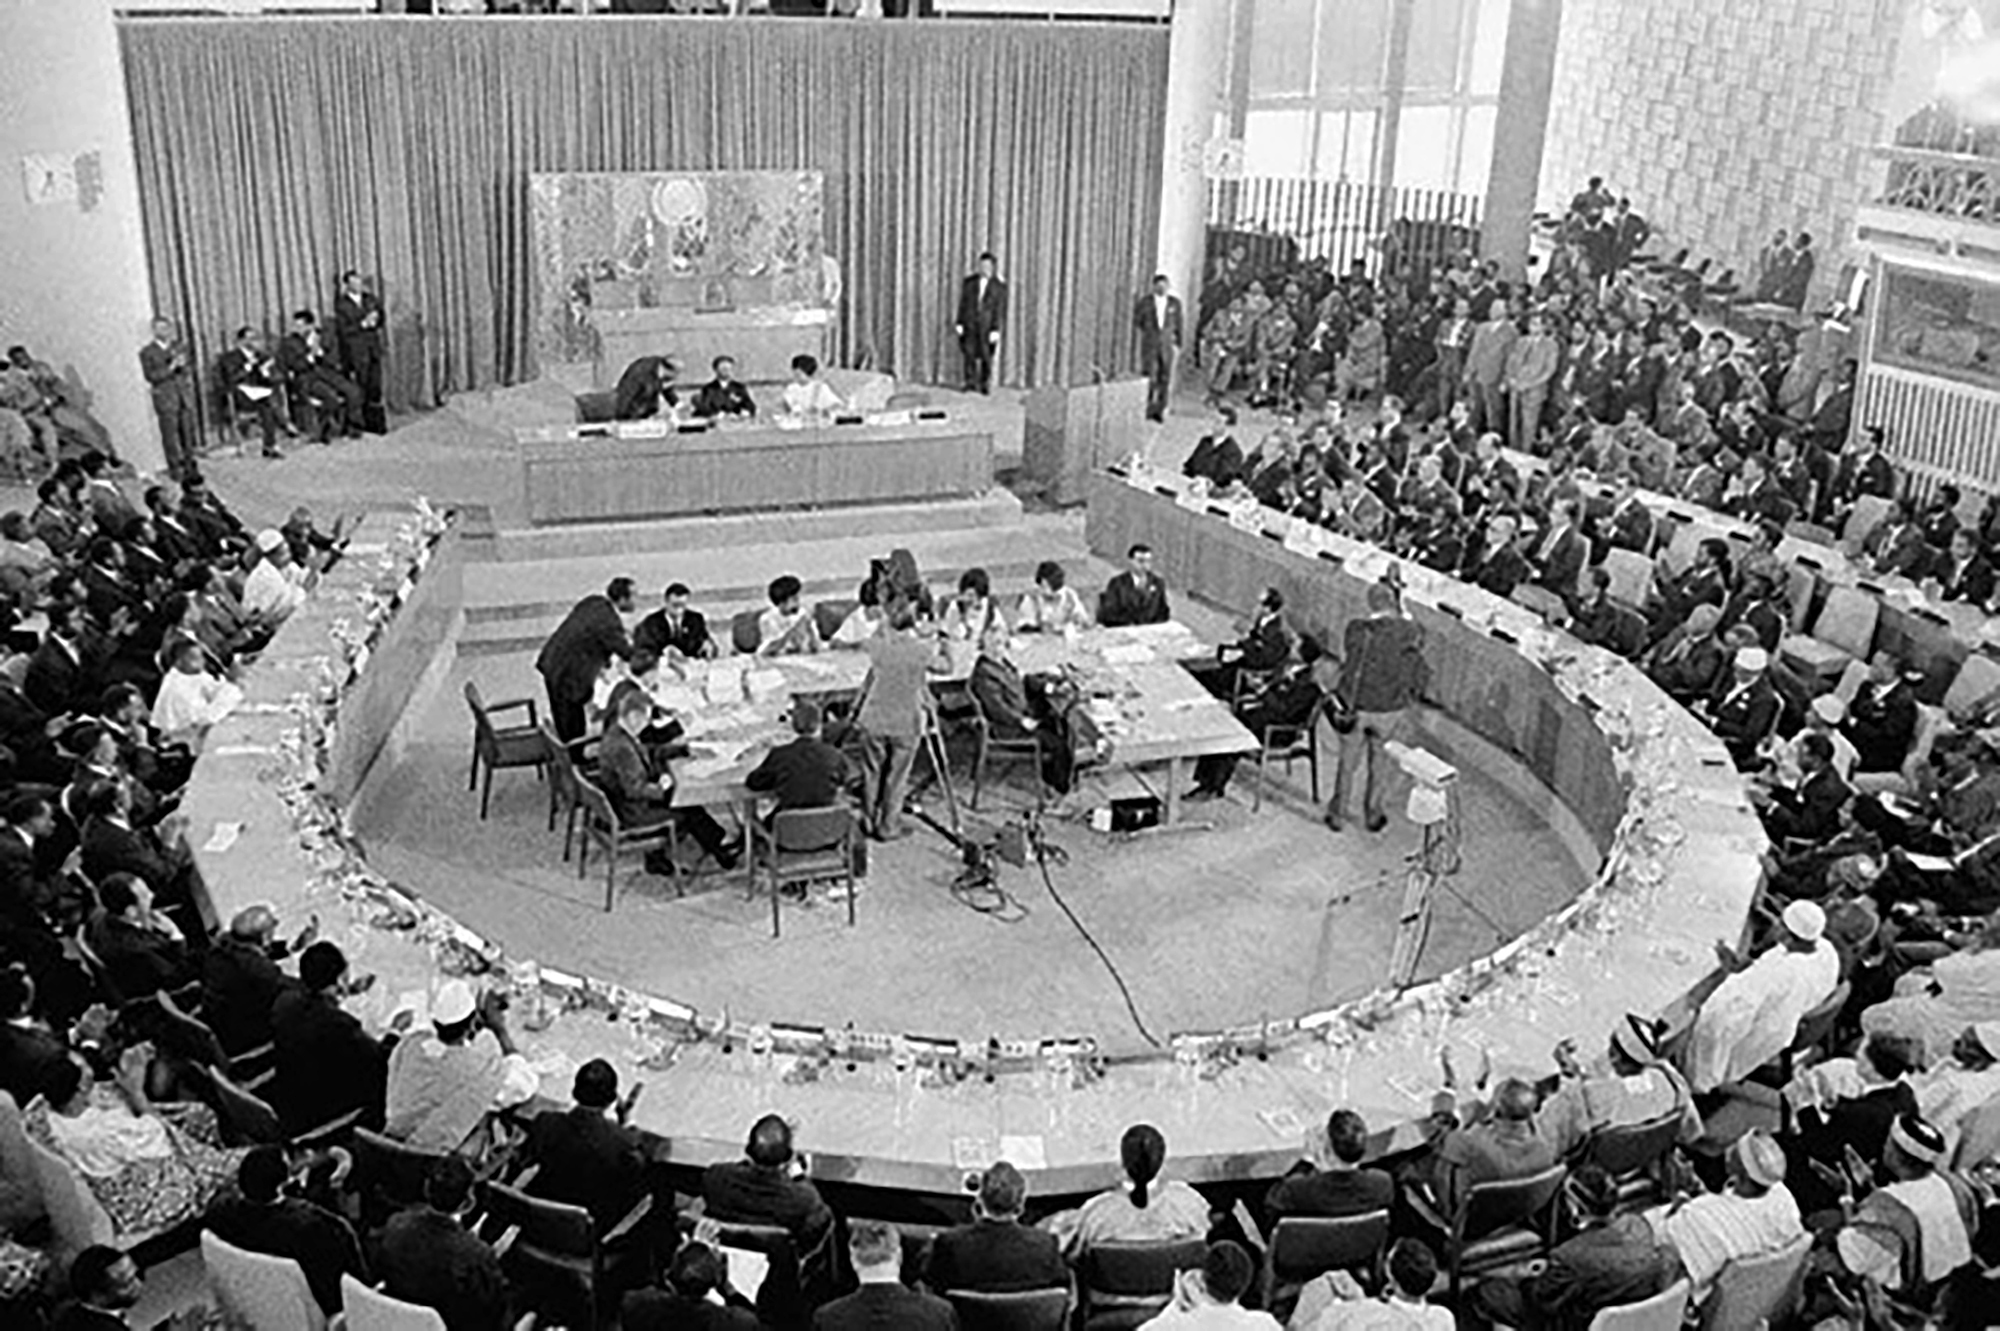 OAU Meeting in 1963 they year the organization was founded